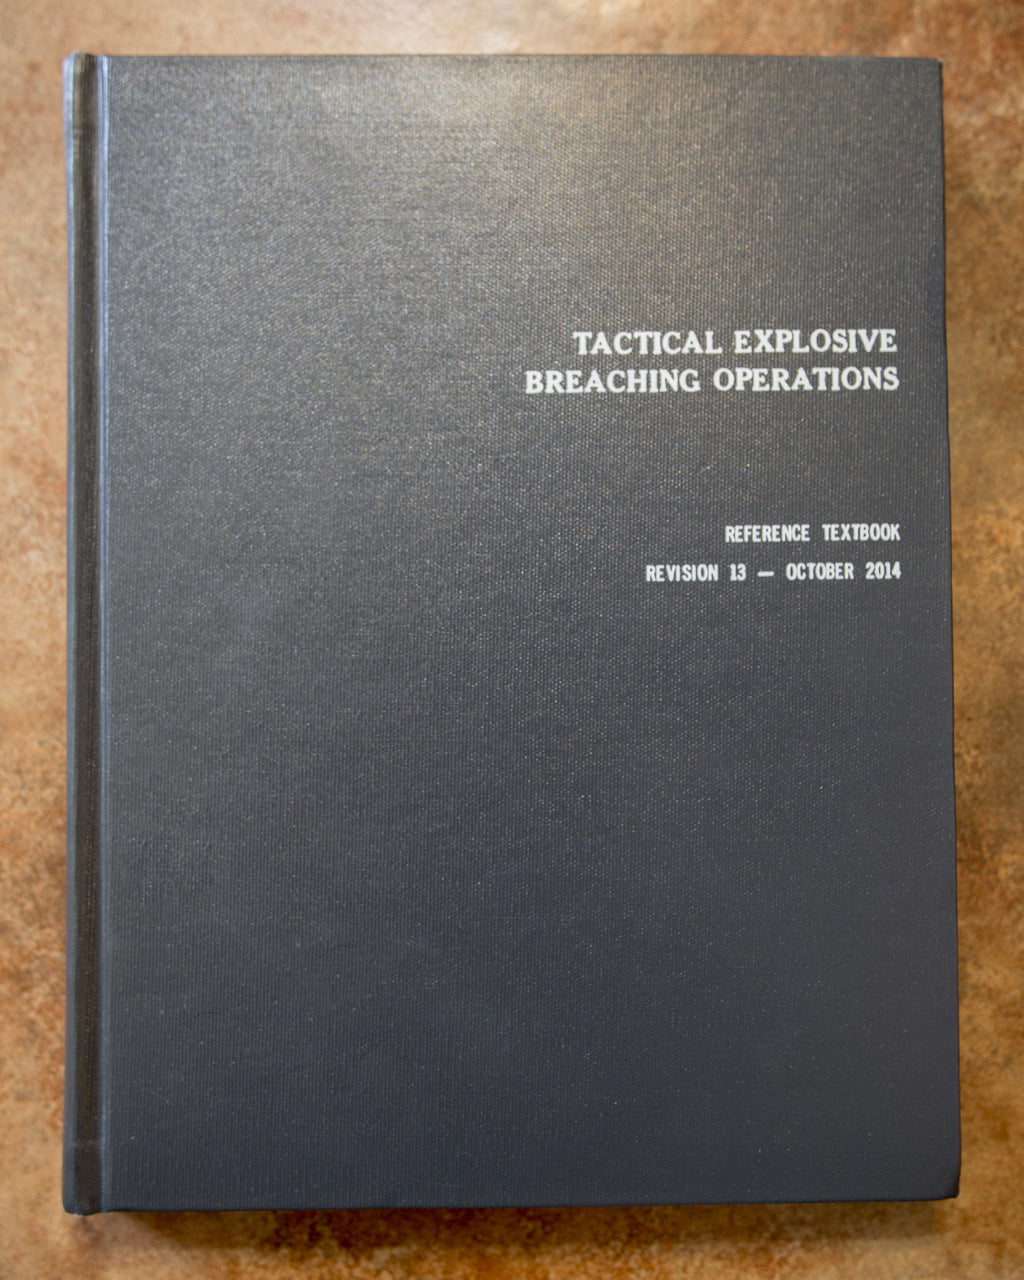 Tactical Explosive Breaching Operations Textbook